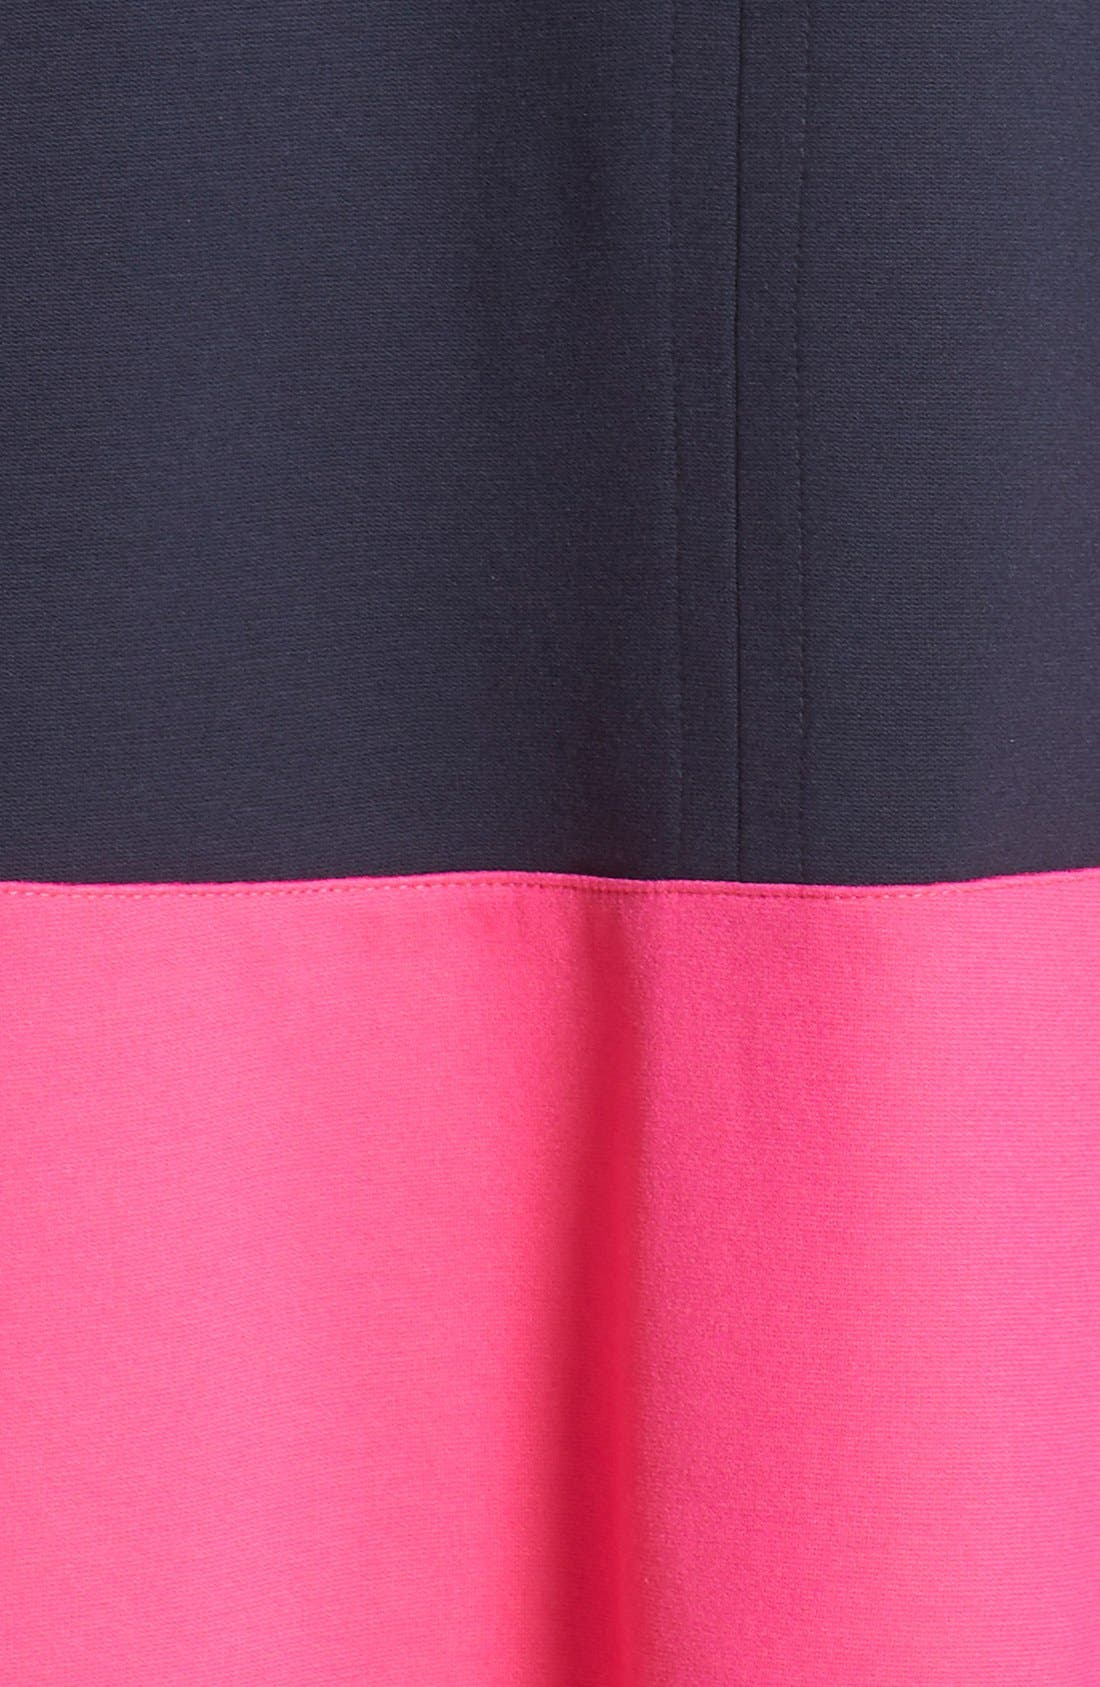 Colorblock Hem Fit & Flare,                             Alternate thumbnail 6, color,                             Navy/ Pink